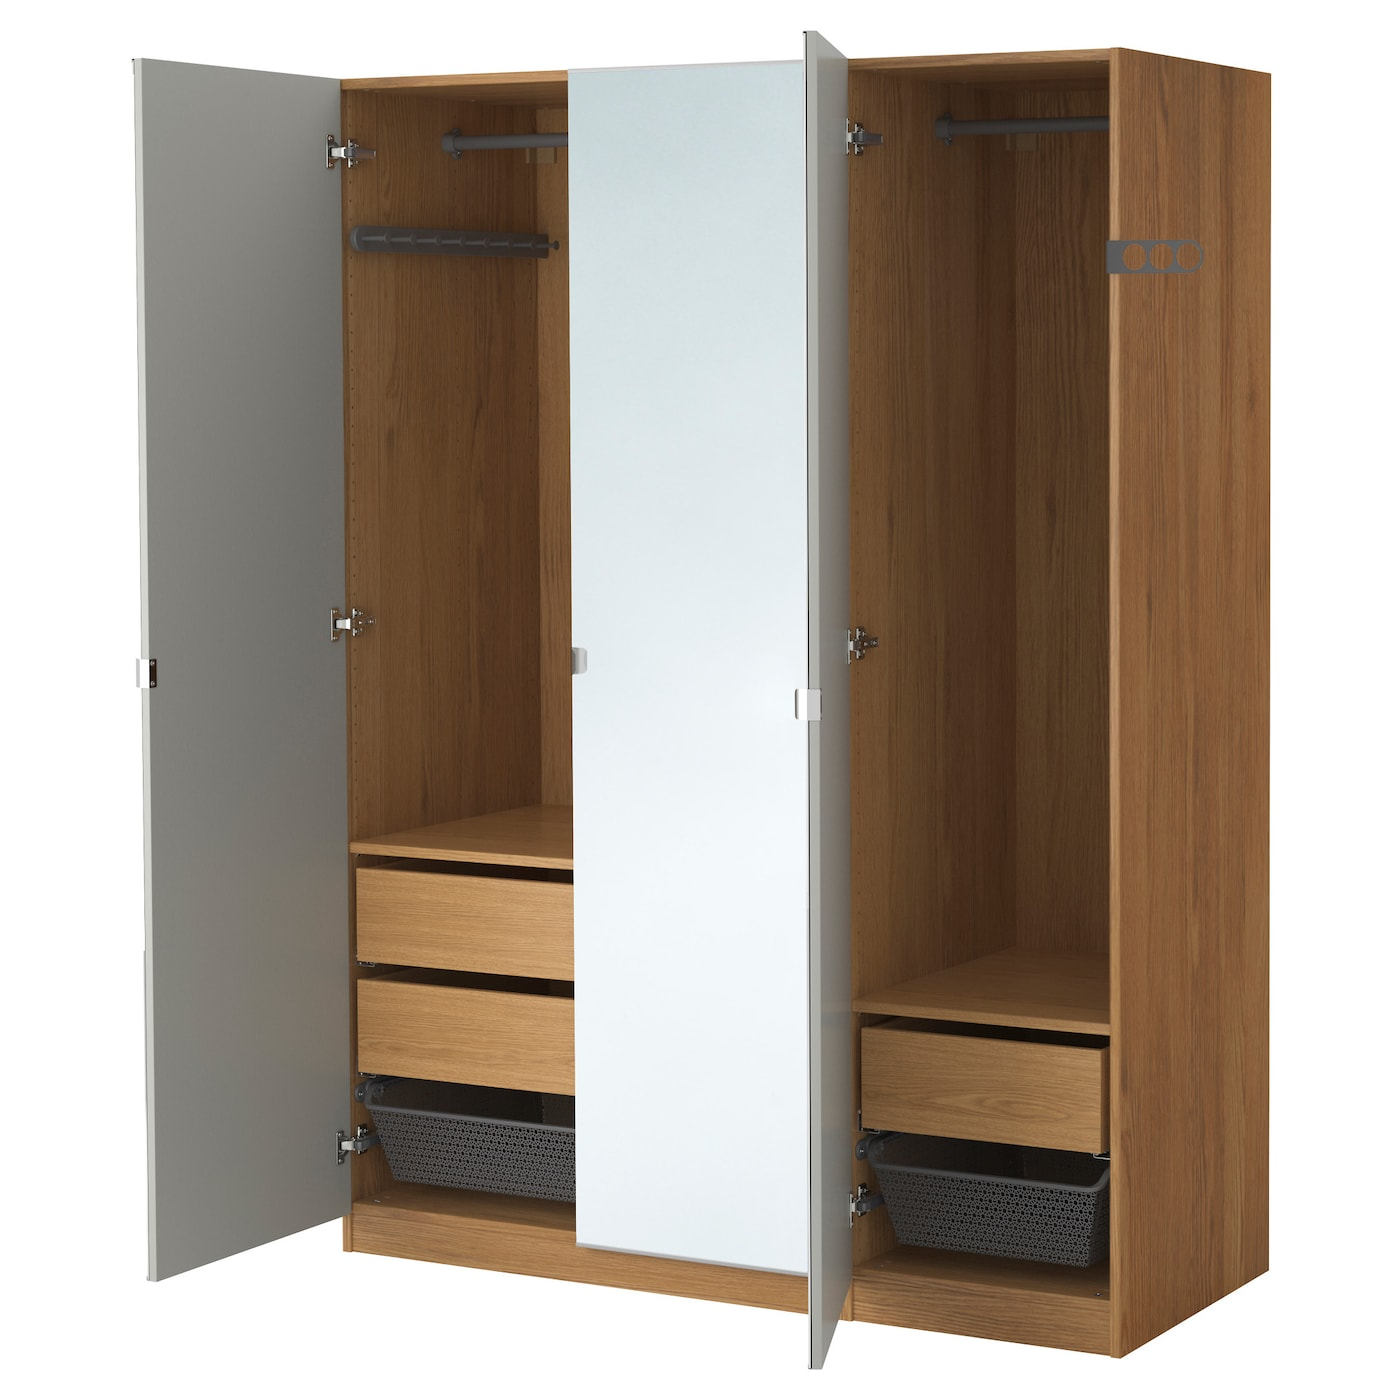 Pax wardrobes design your own wardrobe at ikea - Armadi ikea componibili ...